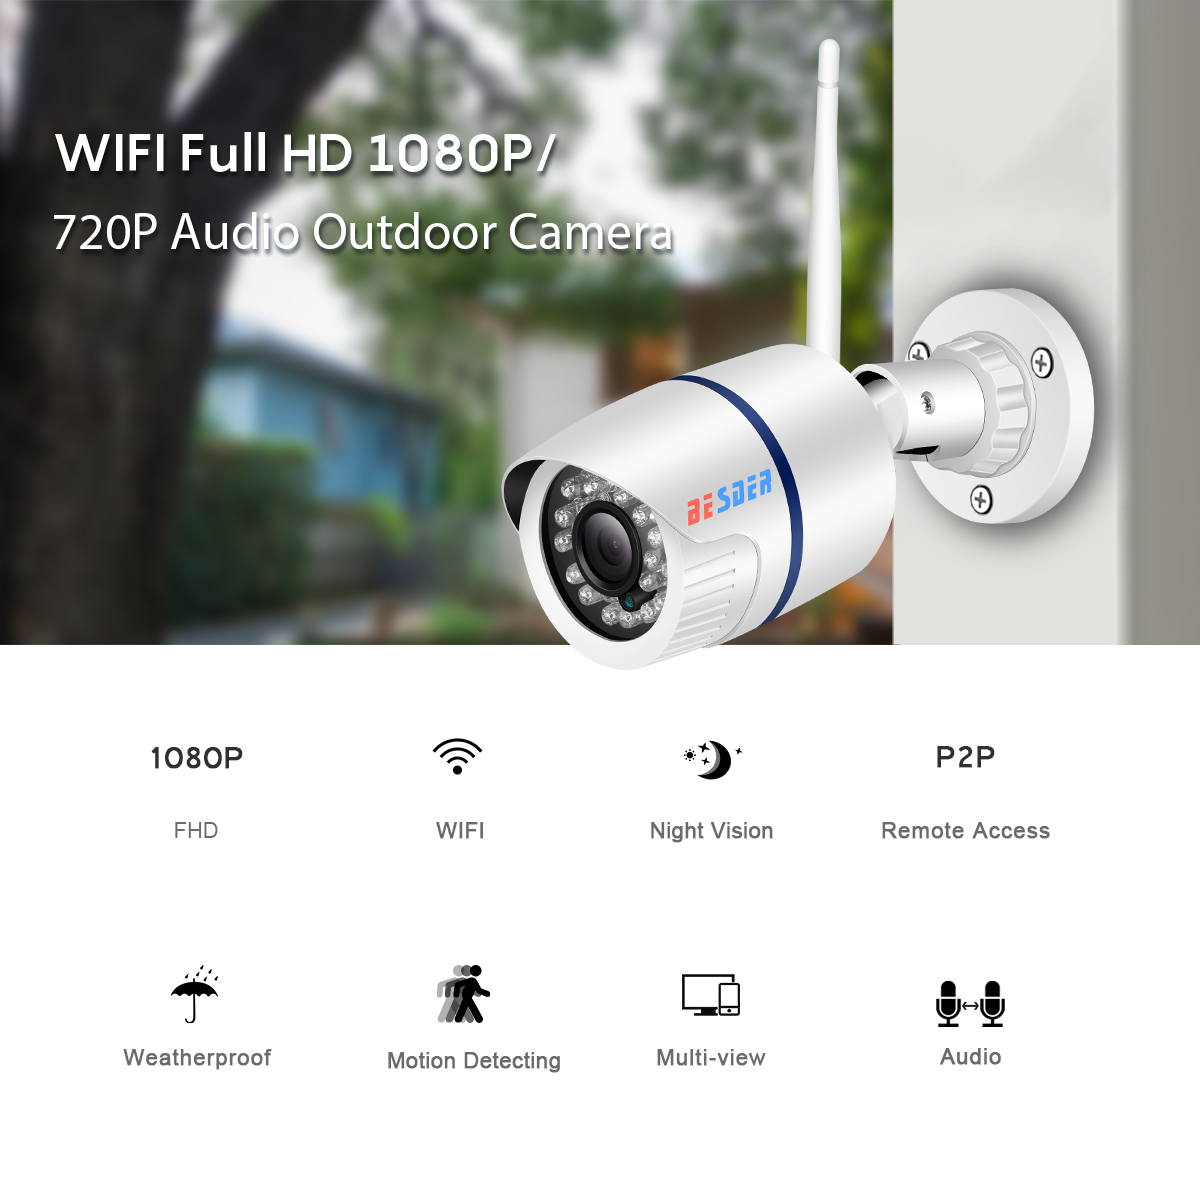 H1d9ce852684d41b2934e81916e6f1d39f BESDER iCsee ONVIF Audio IP Camera 1080P 720P Wireless Wired P2P Alarm CCTV Bullet Outdoor Wifi Camera With SD Card Slot Max 64G